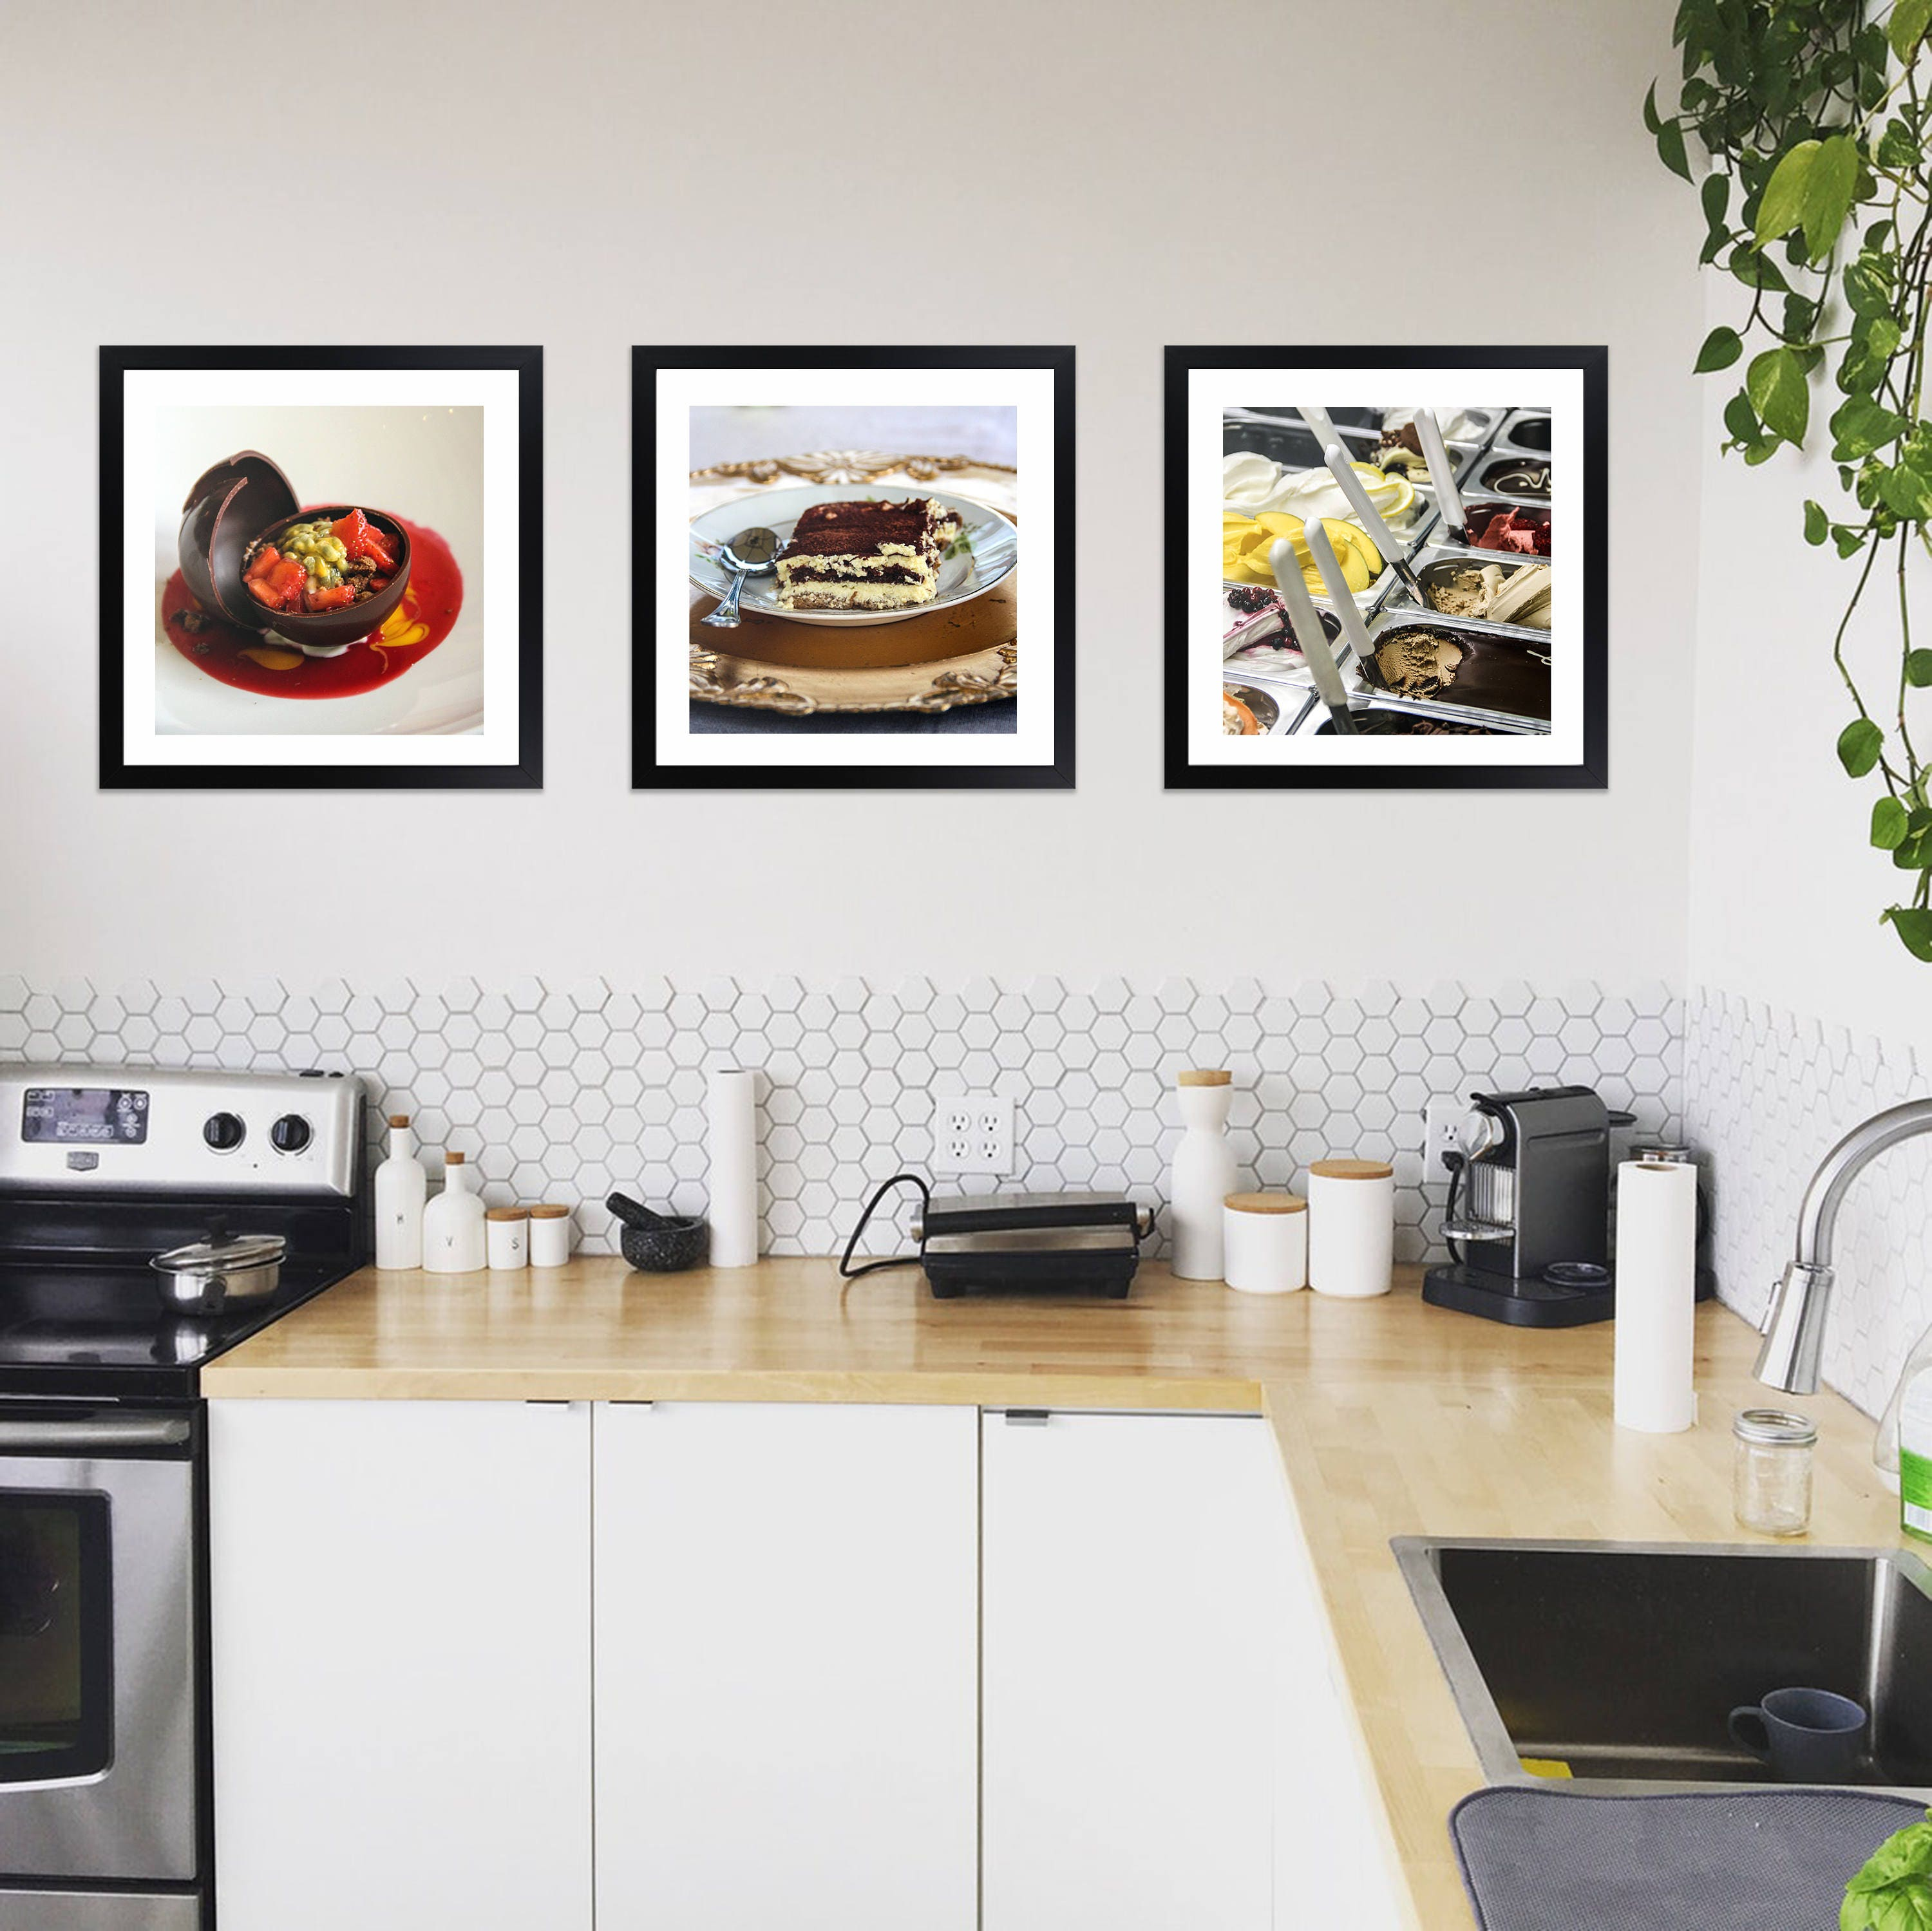 Italian Kitchen Prints Featuring Italian Desserts - Square Framed ...